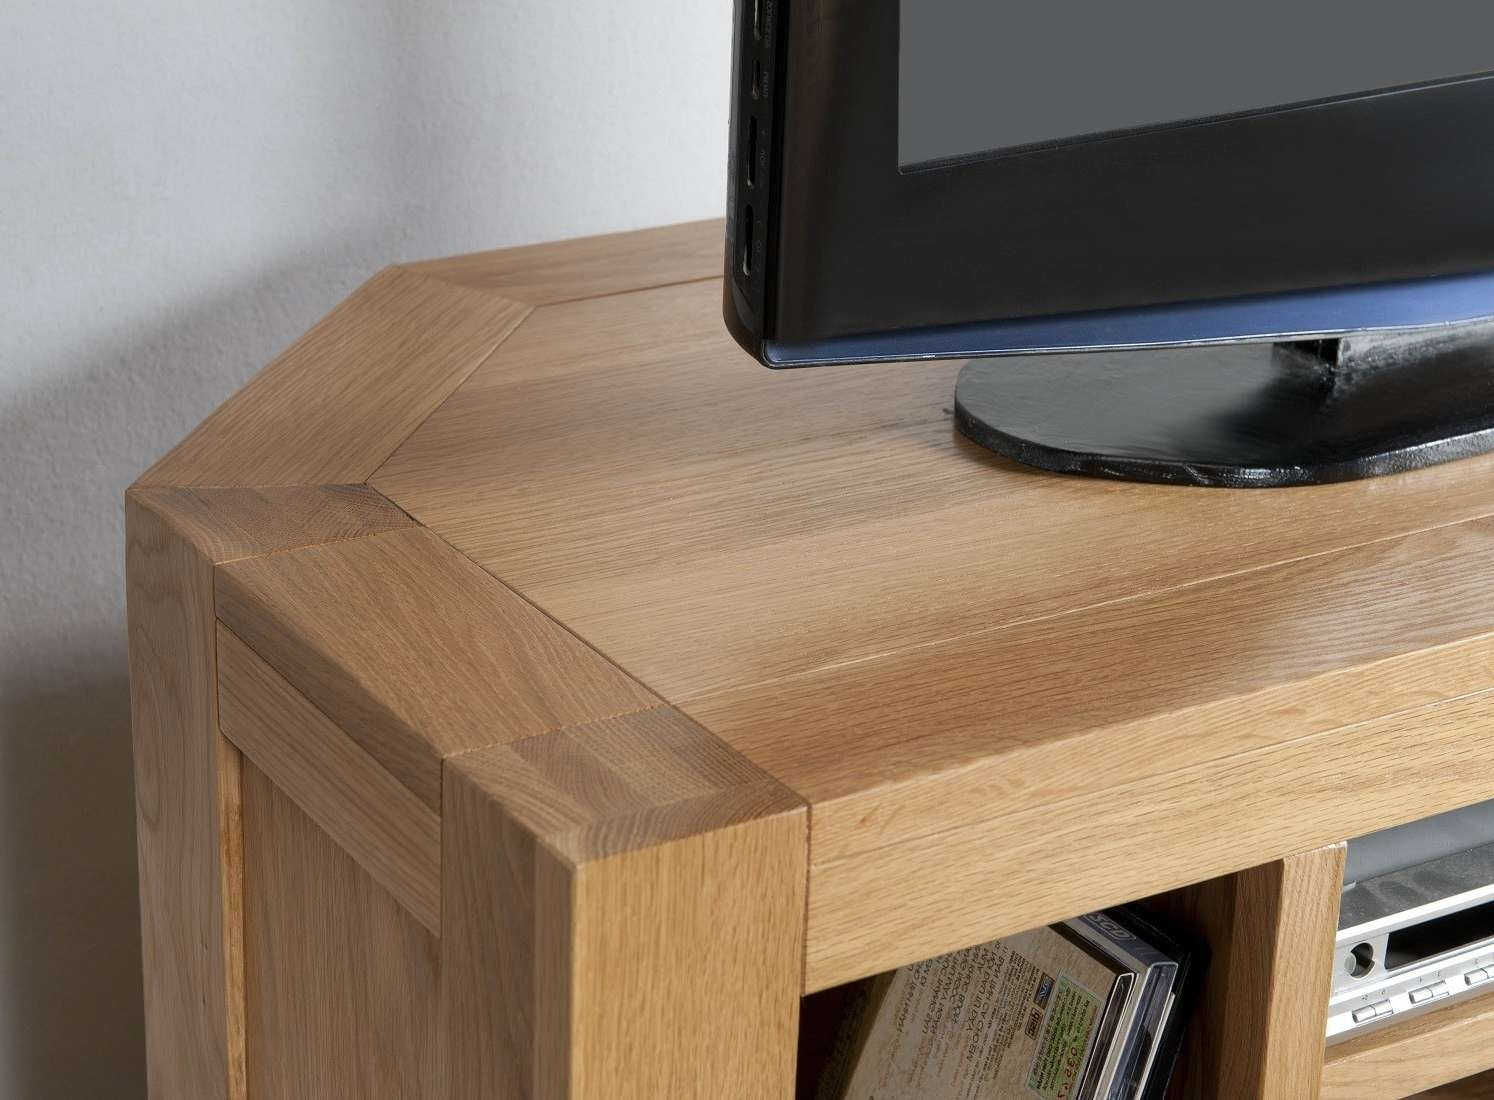 Aylesbury Contemporary Light Oak Corner Tv Unit | Oak Furniture Uk With Regard To Light Oak Corner Tv Cabinets (View 2 of 20)